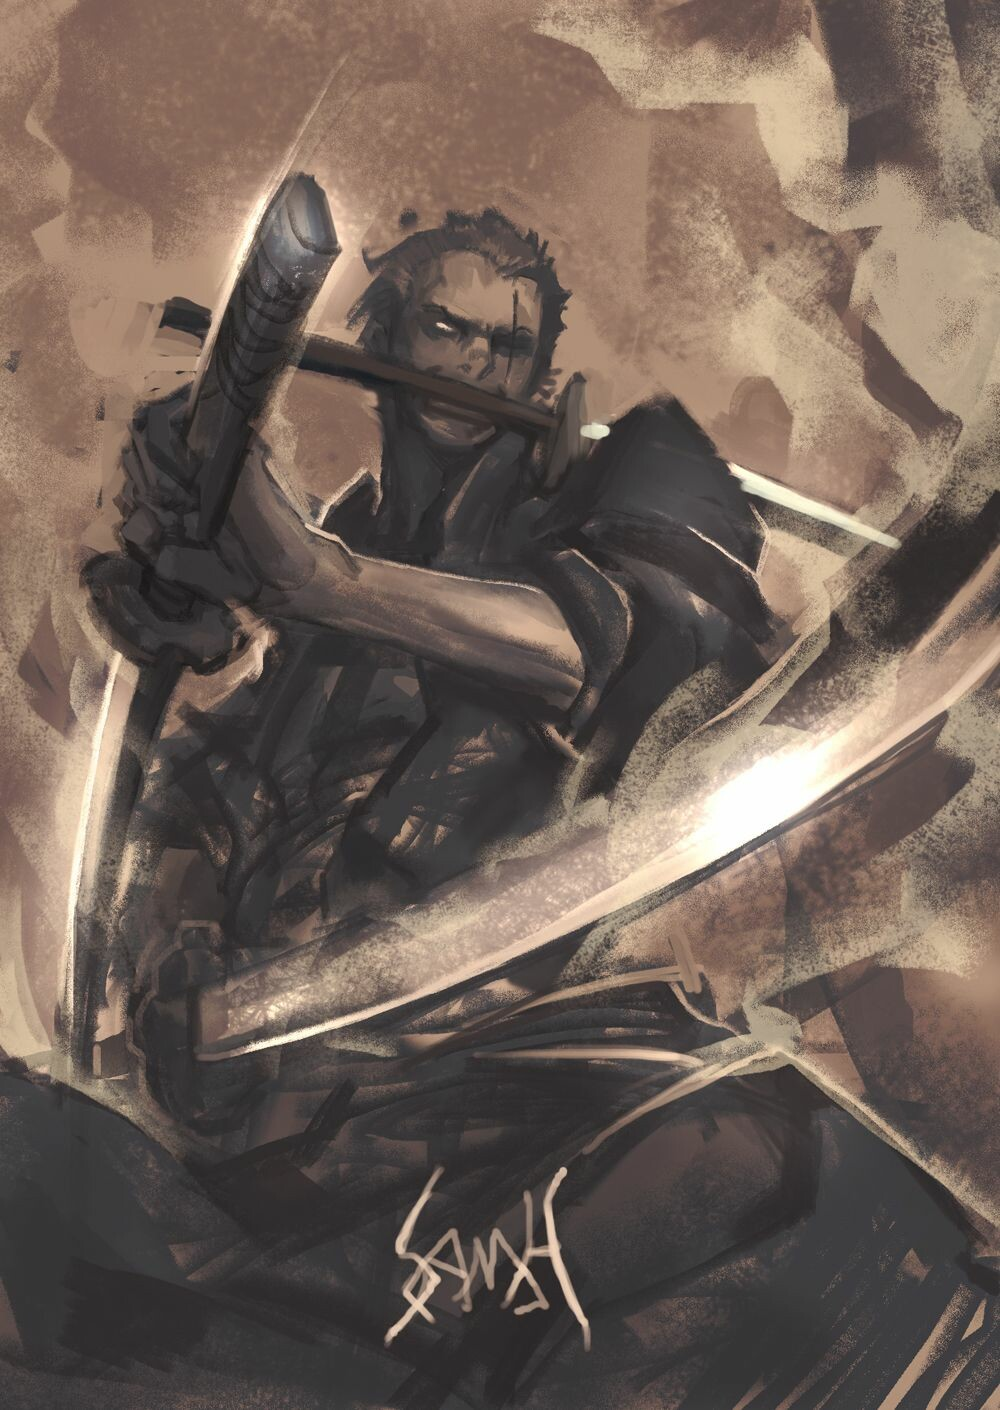 37 Zoro Hd Wallpapers Hd 4k 5k For Pc And Mobile Download Free Images For Iphone Android